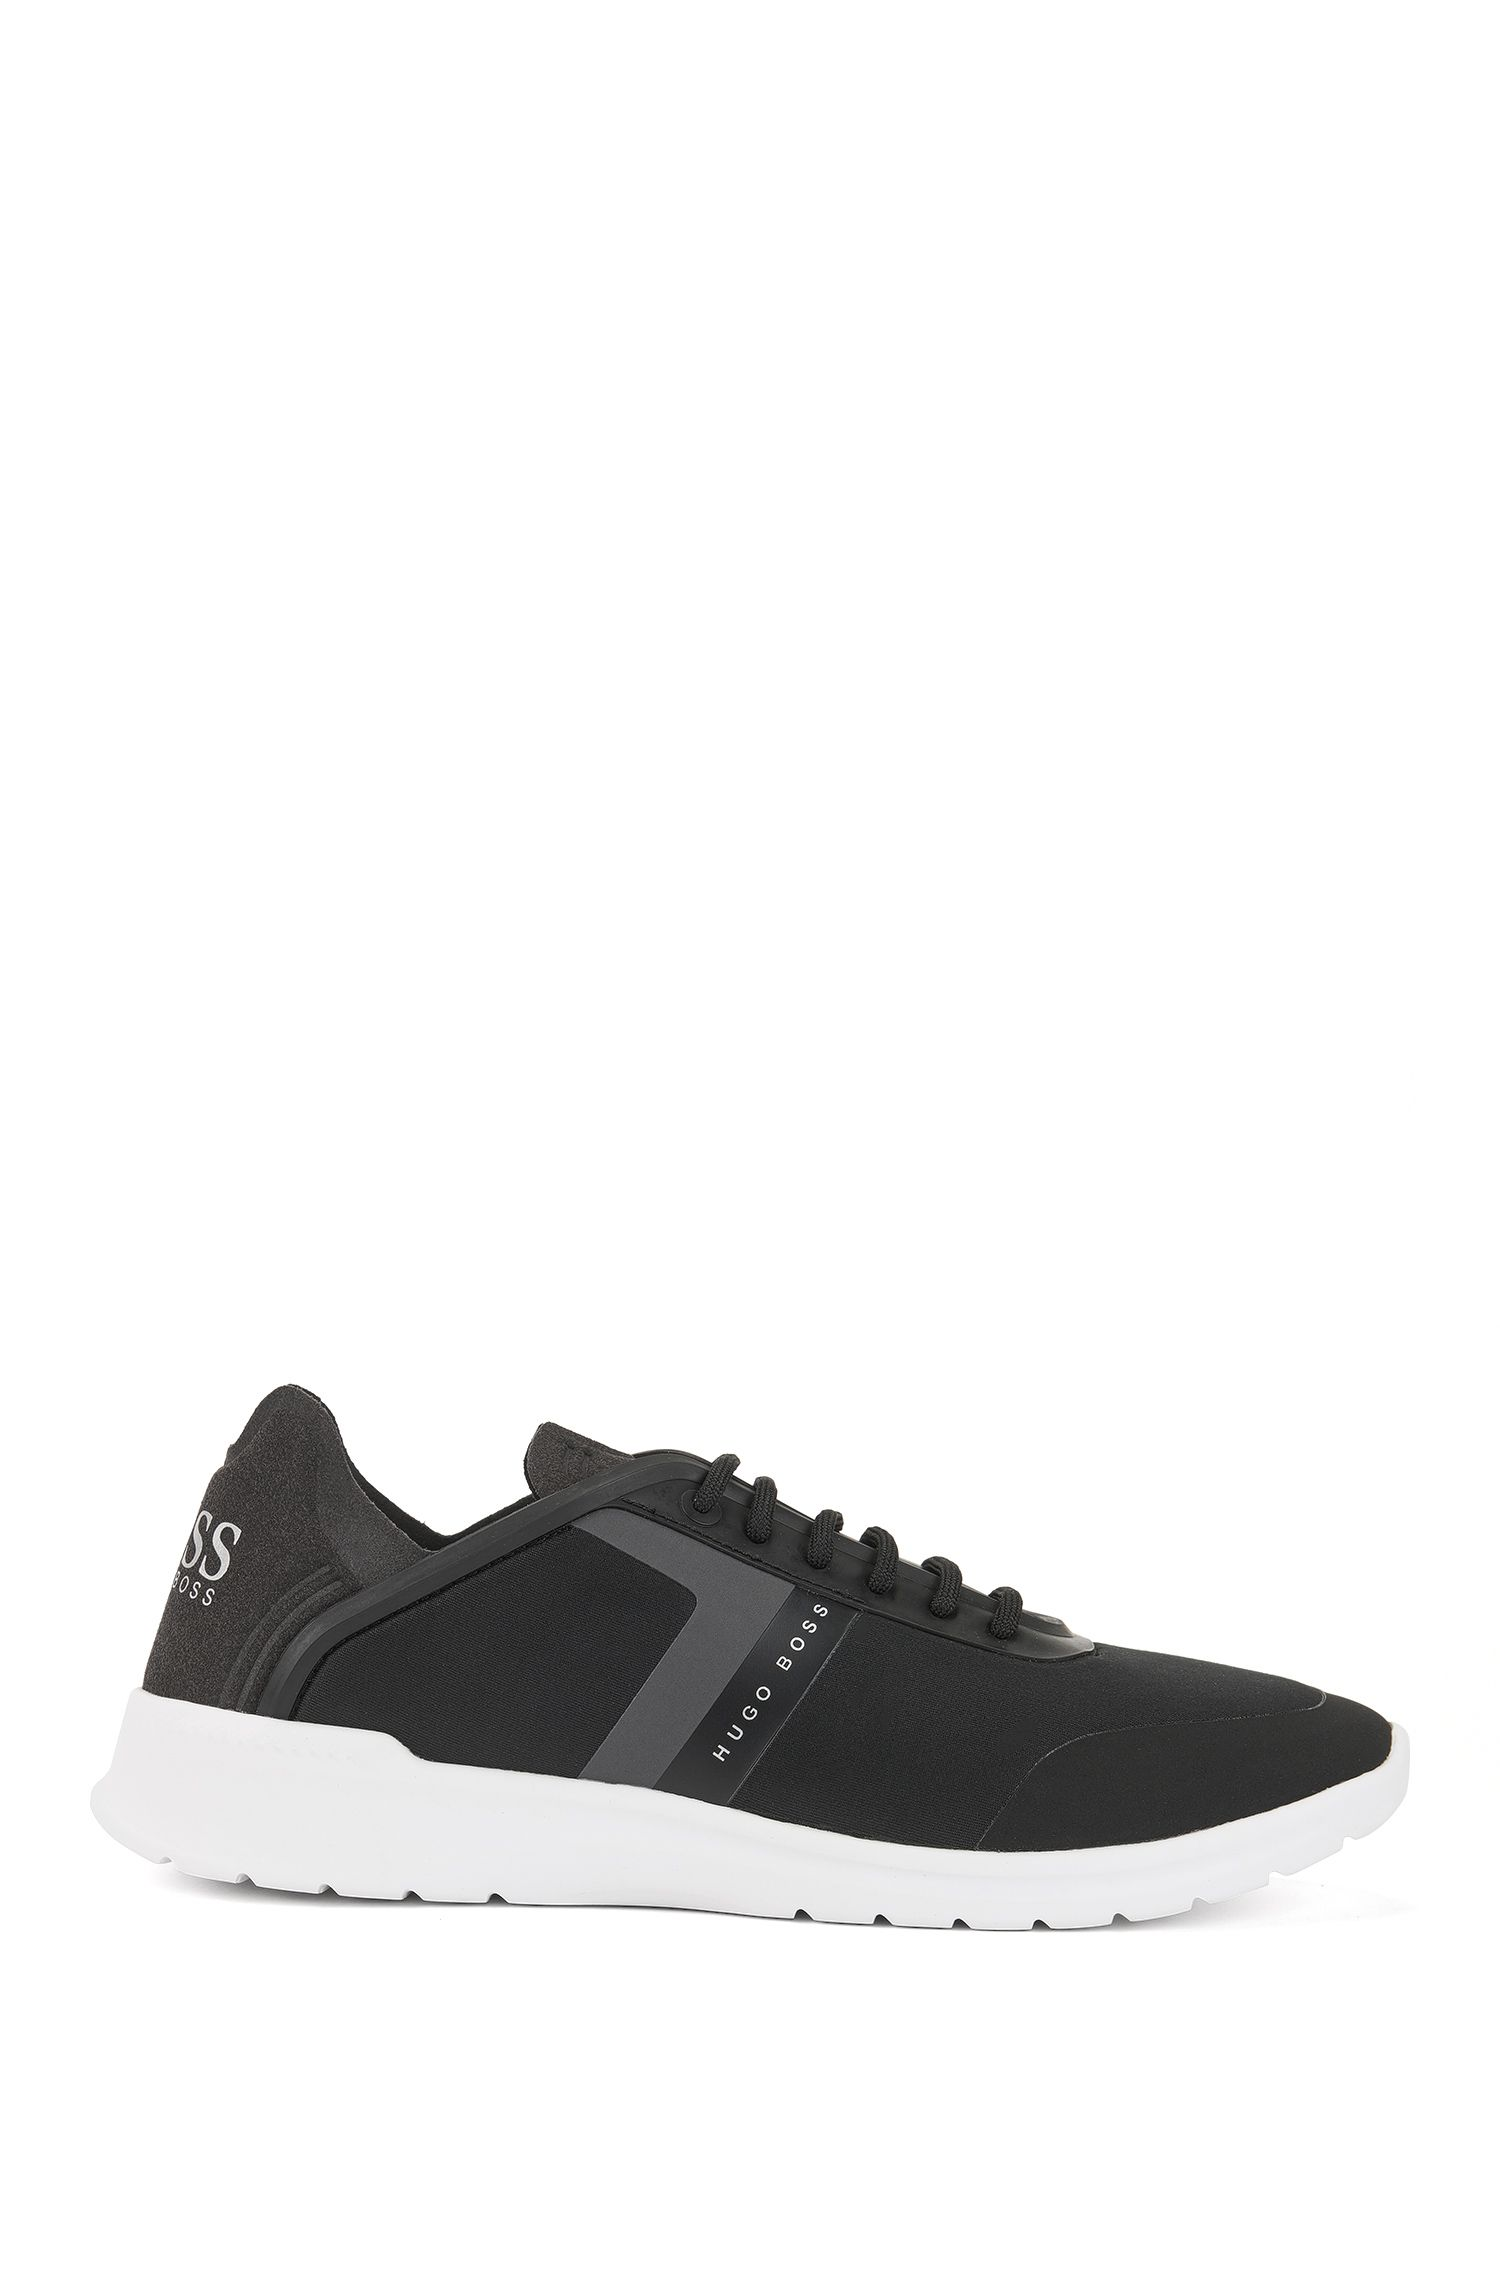 Low-top trainers in neoprene and microfibre